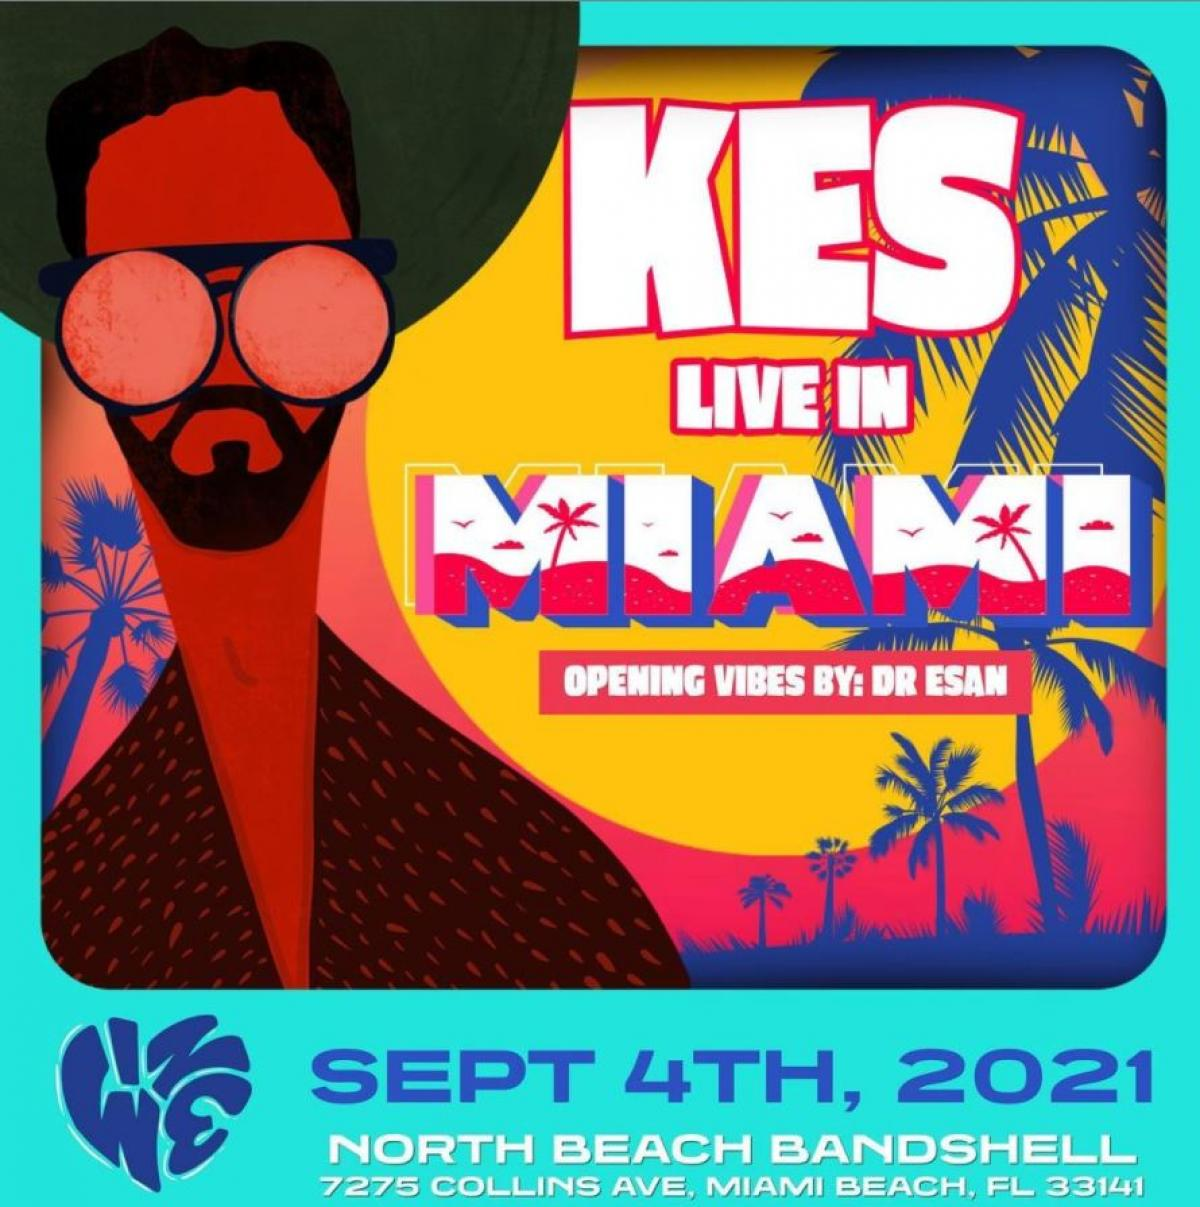 Kes The Band Live In Miami flyer or graphic.